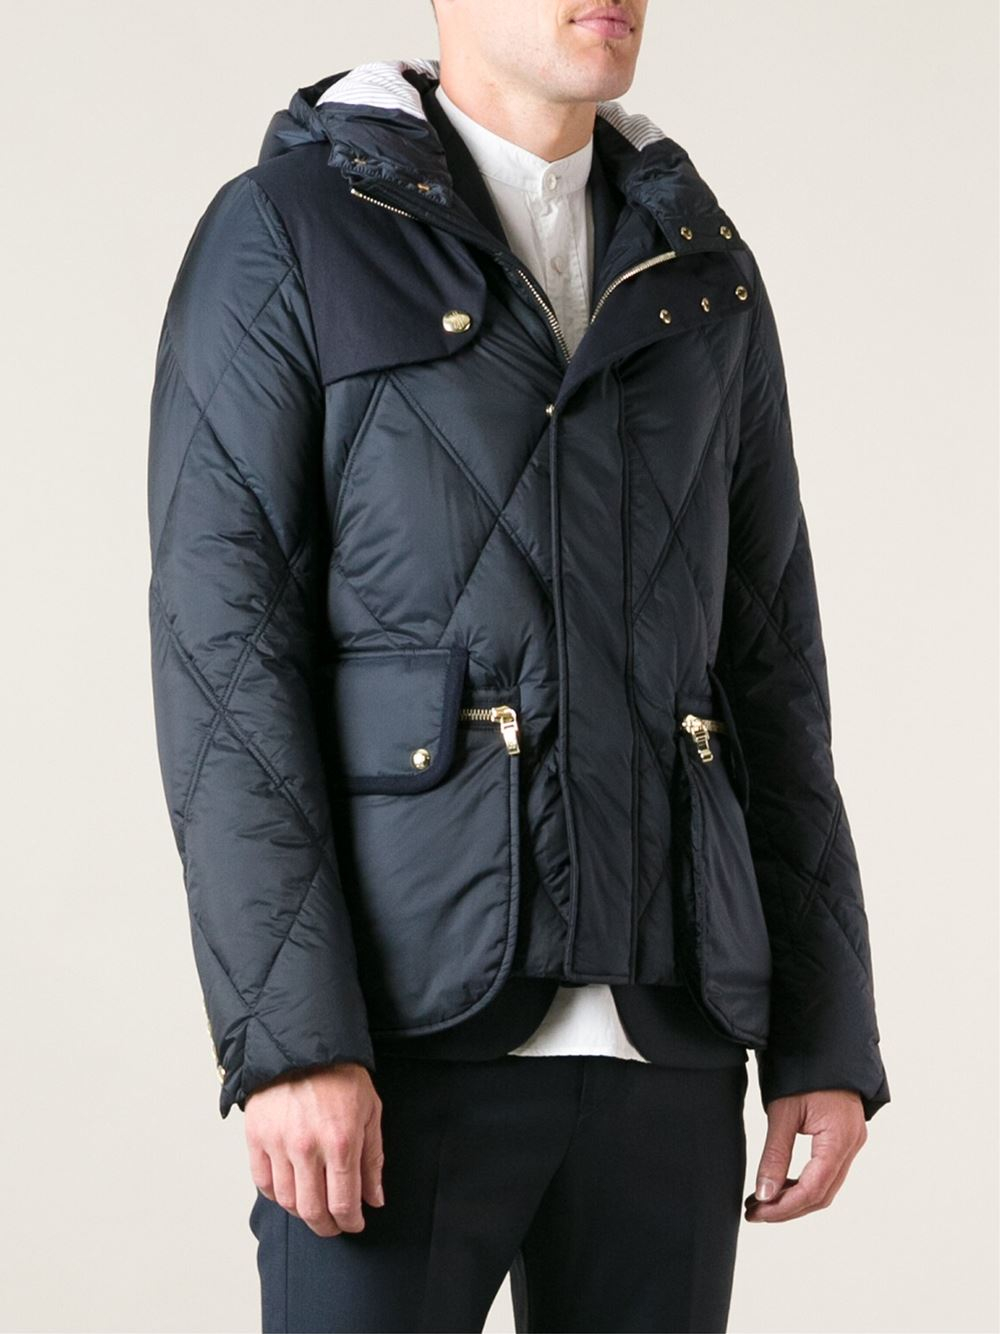 8c8f958e5d44 Lyst - Moncler Gamme Bleu Quilted Feather Down Jacket in Blue for Men